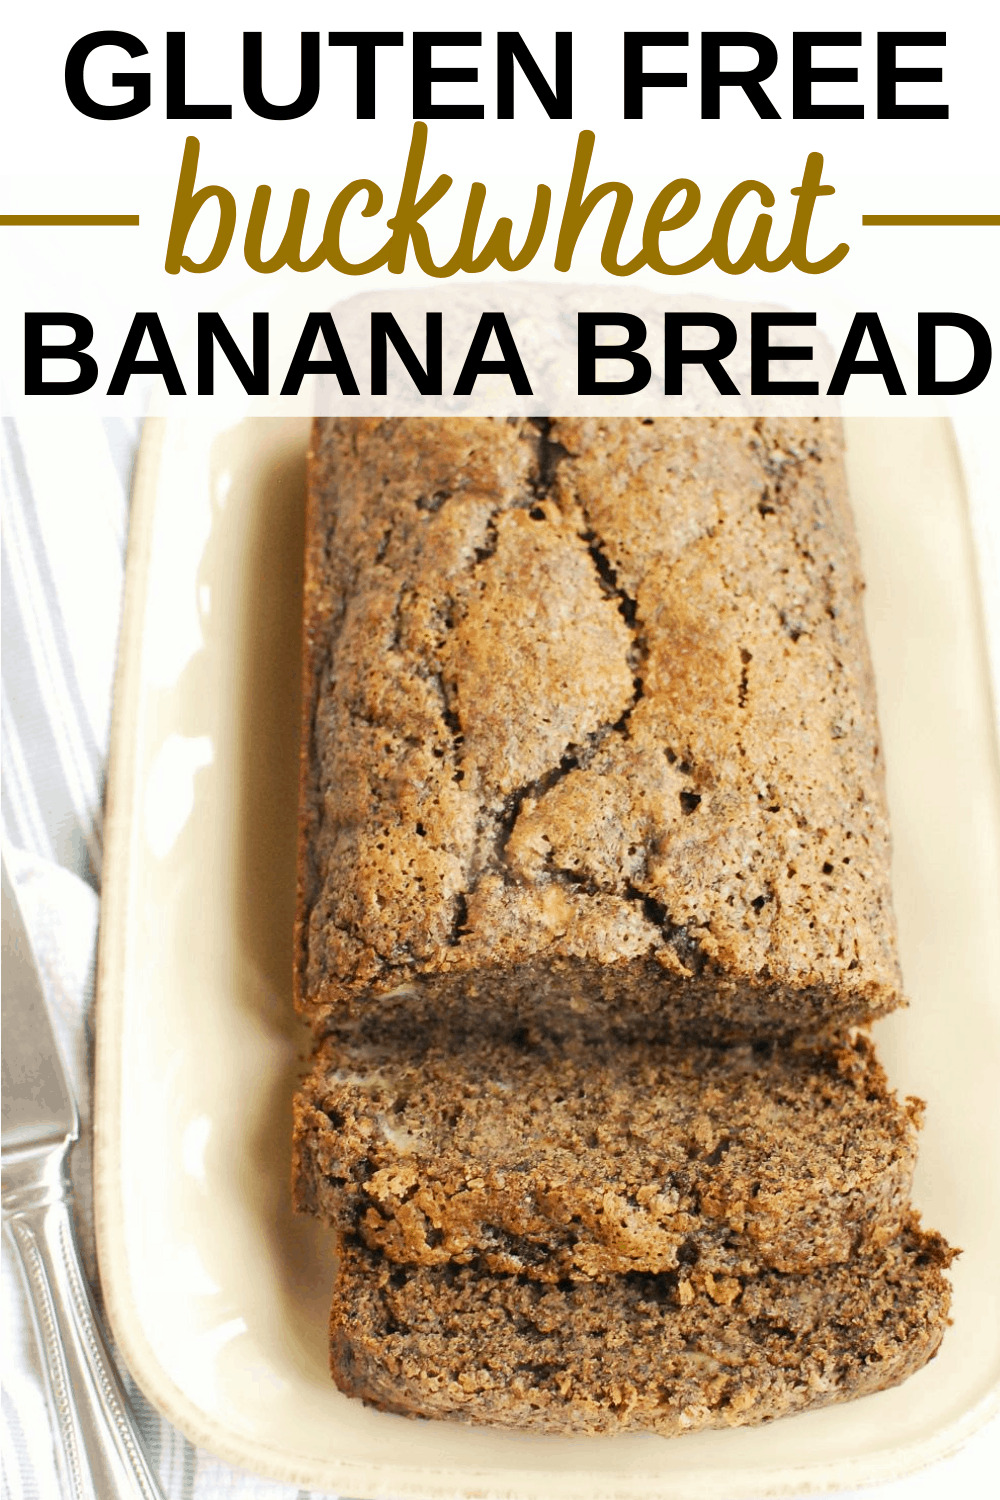 a loaf of buckwheat banana bread on a plate with two slices cut into it and a text overlay